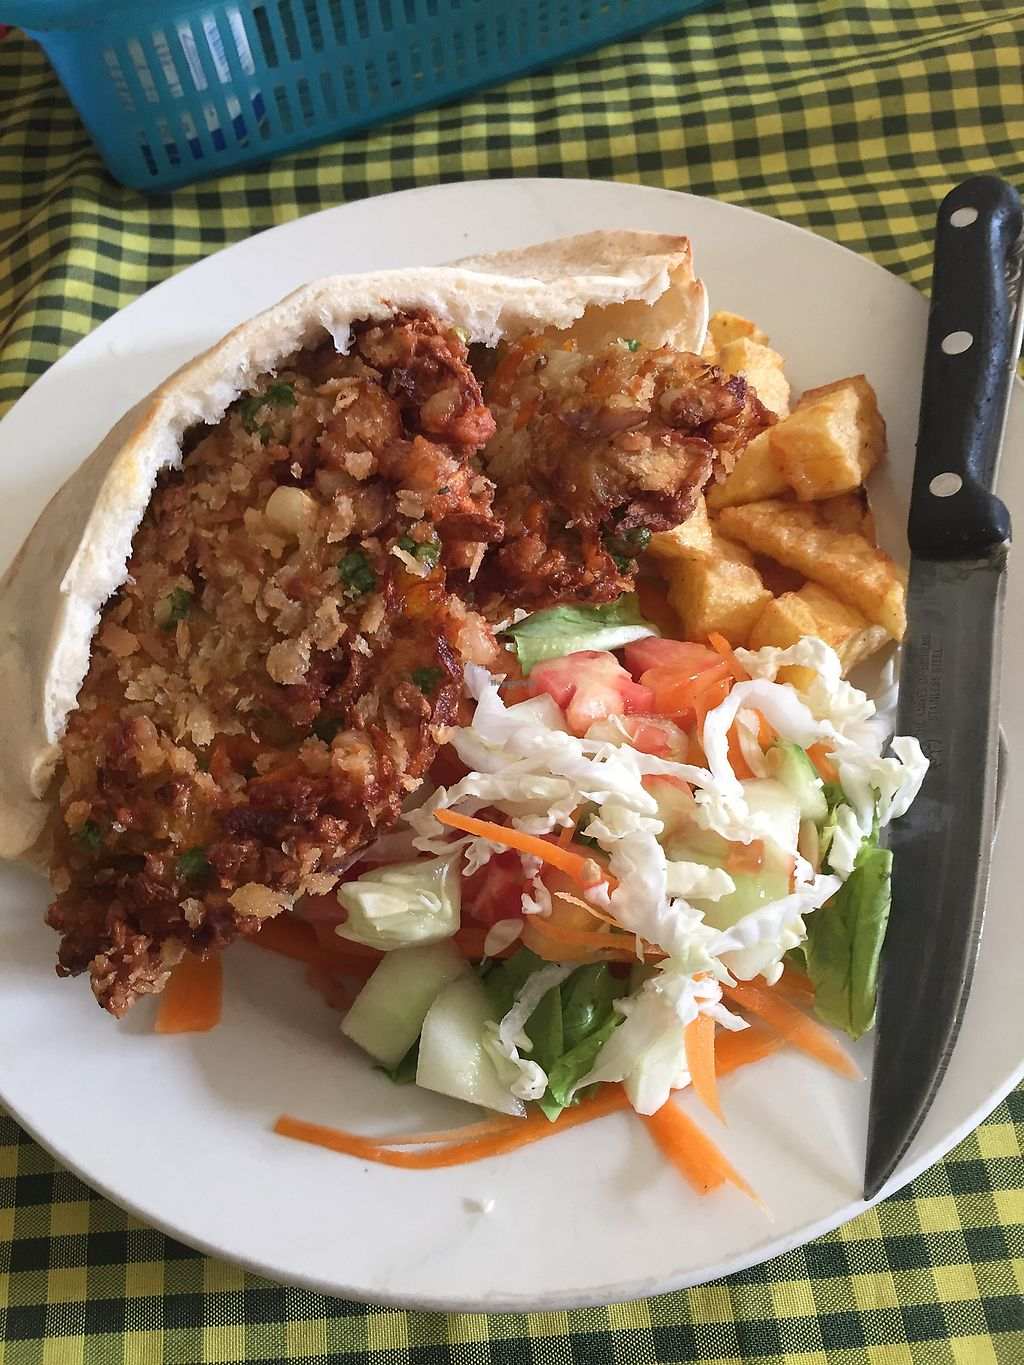 """Photo of Veggie Tables  by <a href=""""/members/profile/veganburrito____"""">veganburrito____</a> <br/>Mixed veg kebab with chips and salad <br/> July 16, 2017  - <a href='/contact/abuse/image/30679/280834'>Report</a>"""